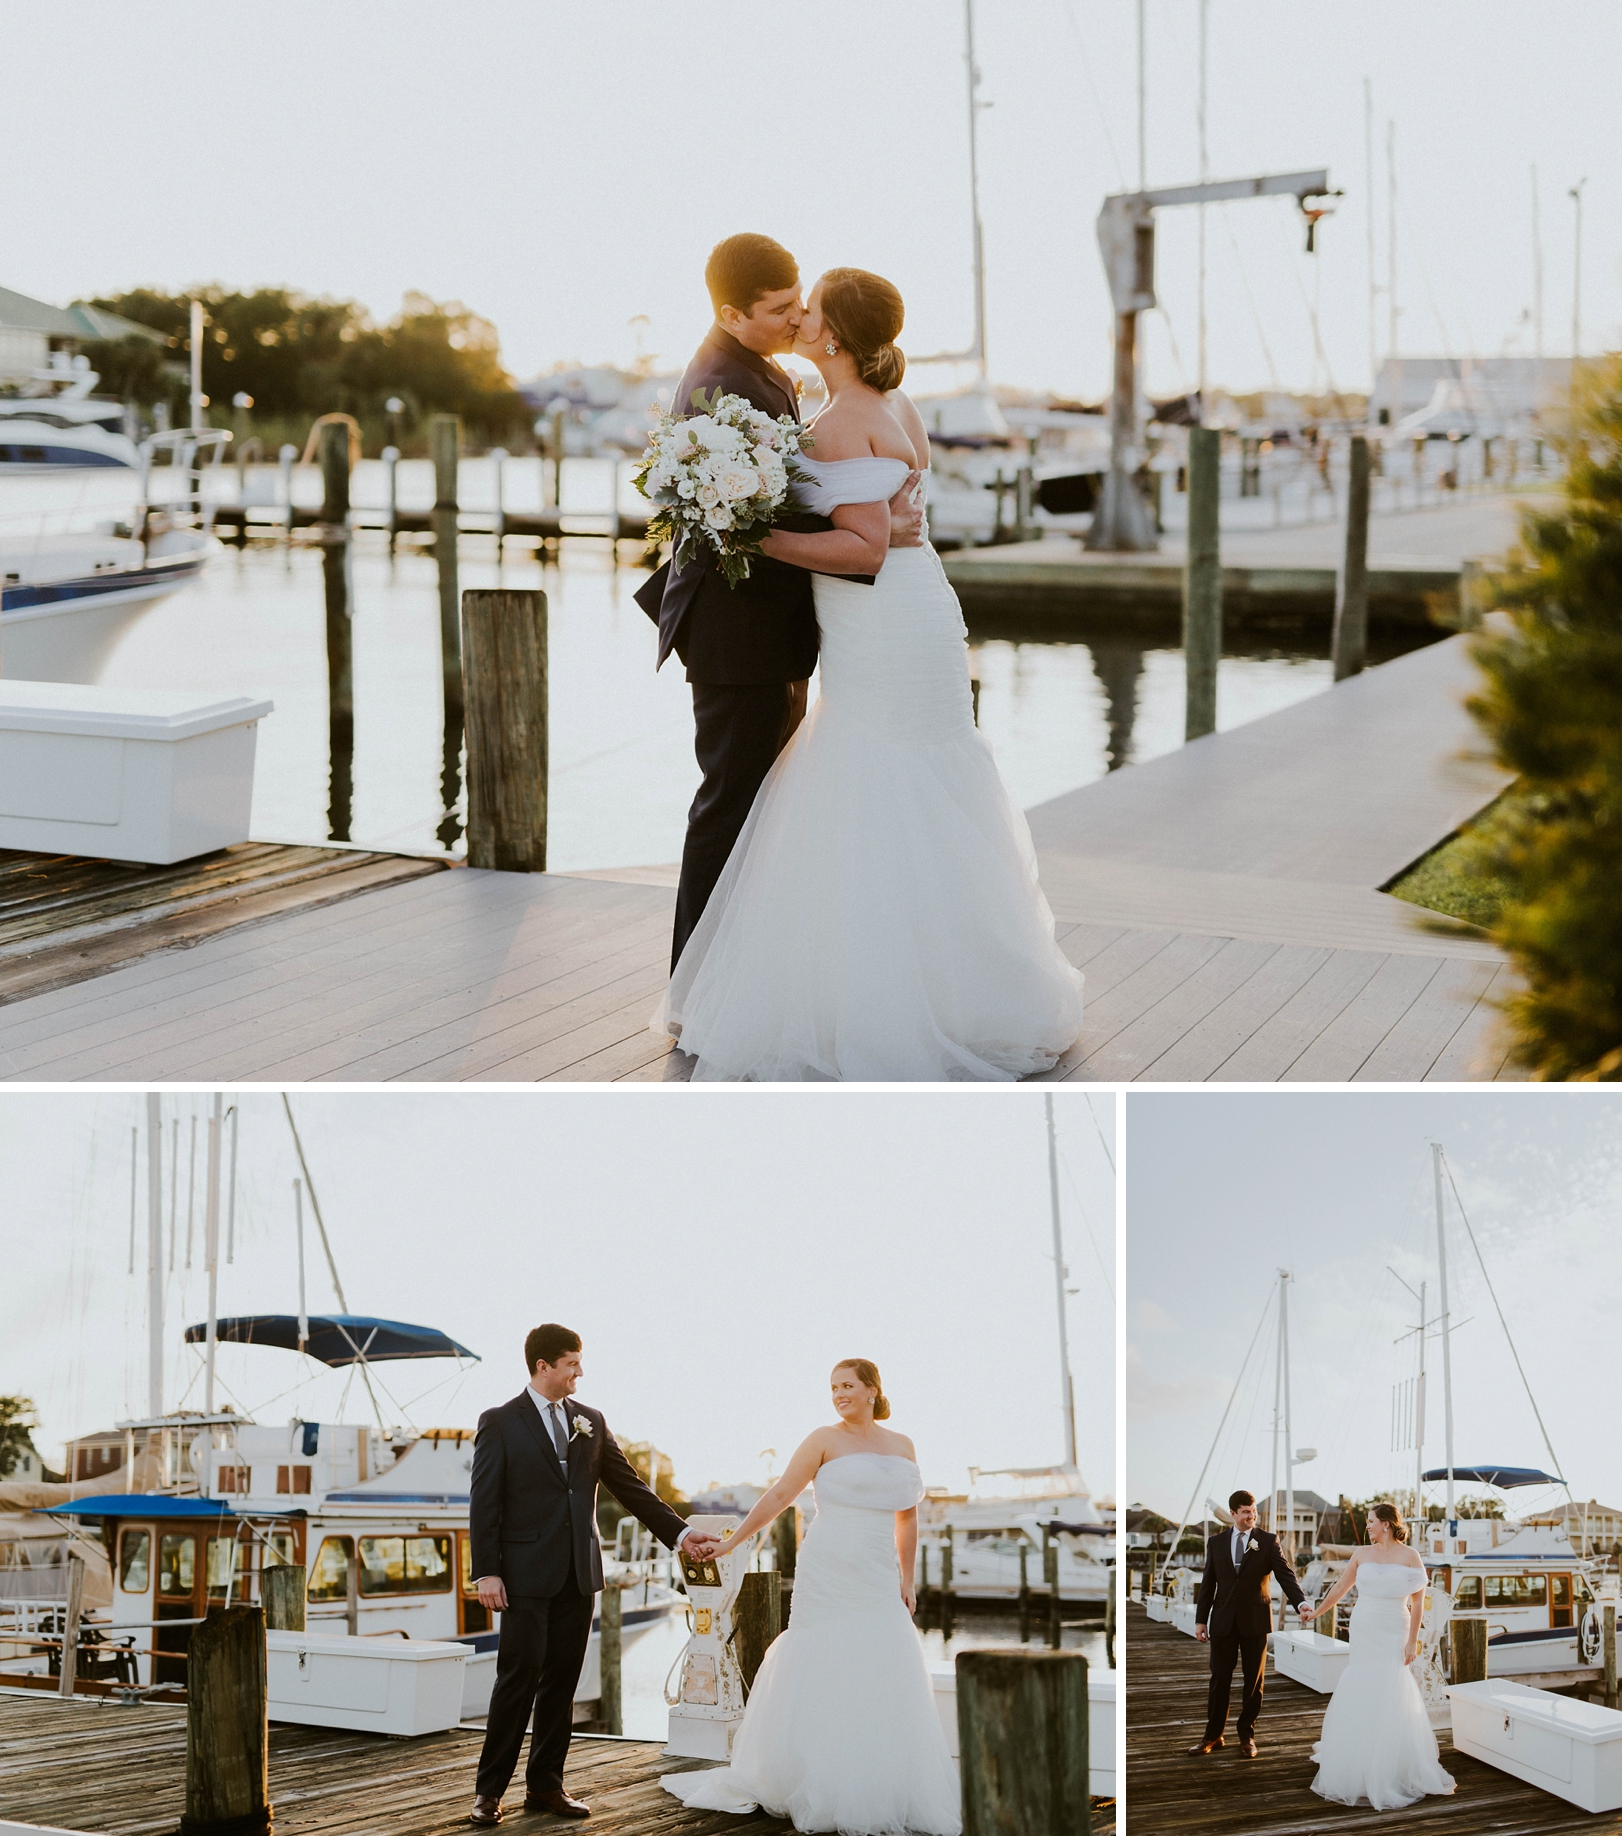 pensacola_yacht_club_wedding_photos_0024.jpg